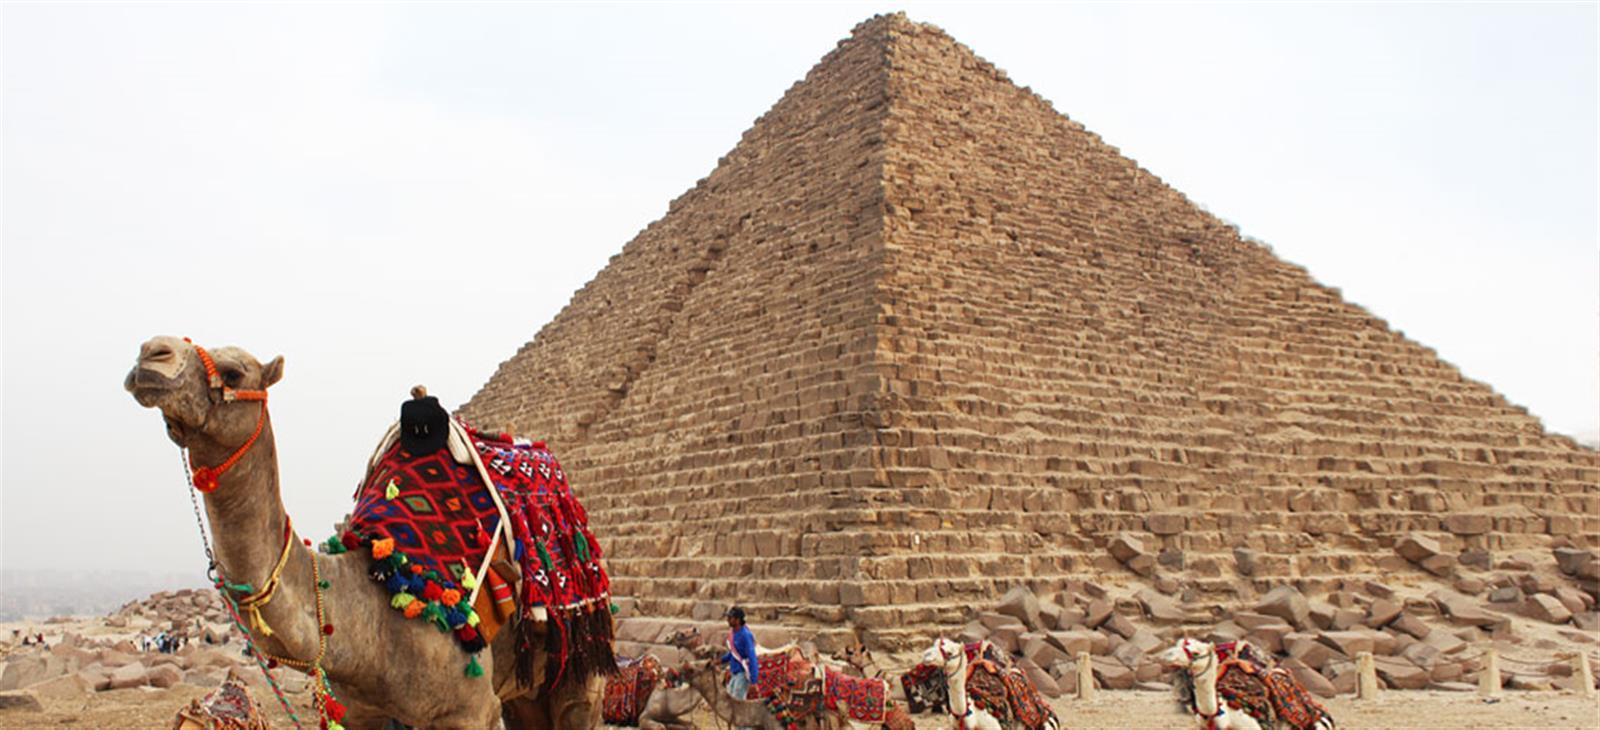 two days tours in alexandria and pyramids from alexandria port